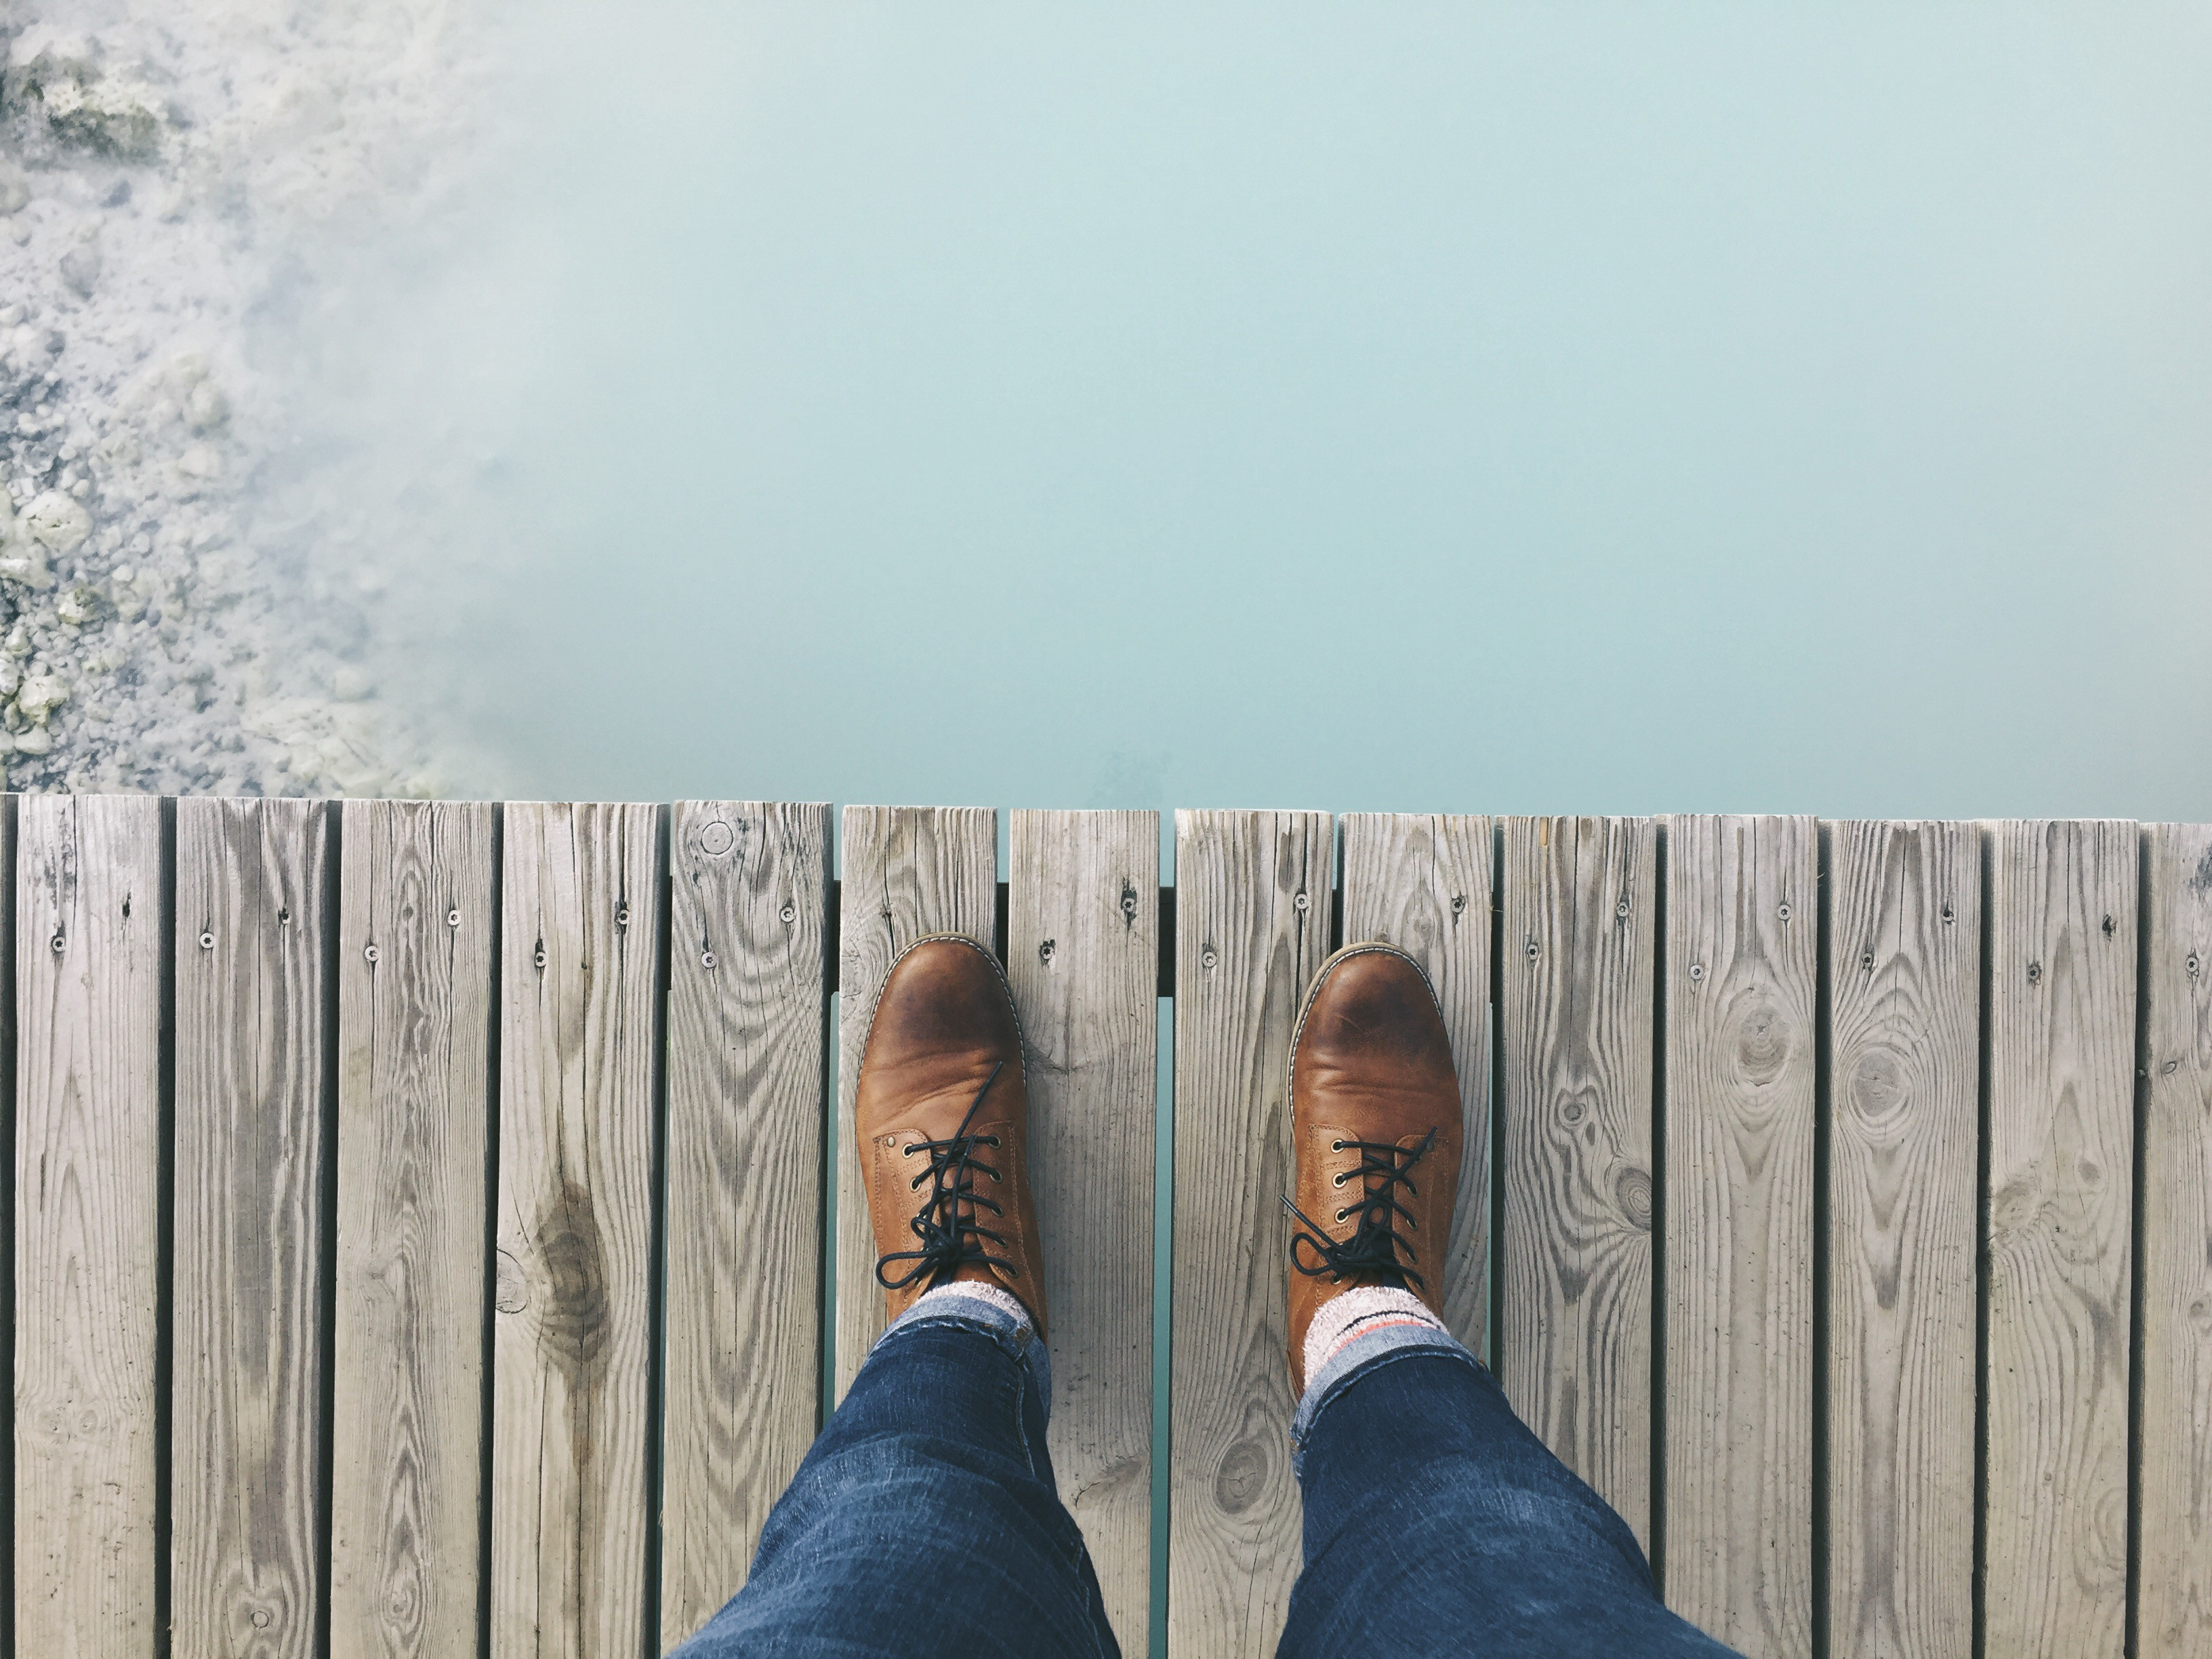 Person looking down at their shoes as they stand on wooden walkway over cloudy water.